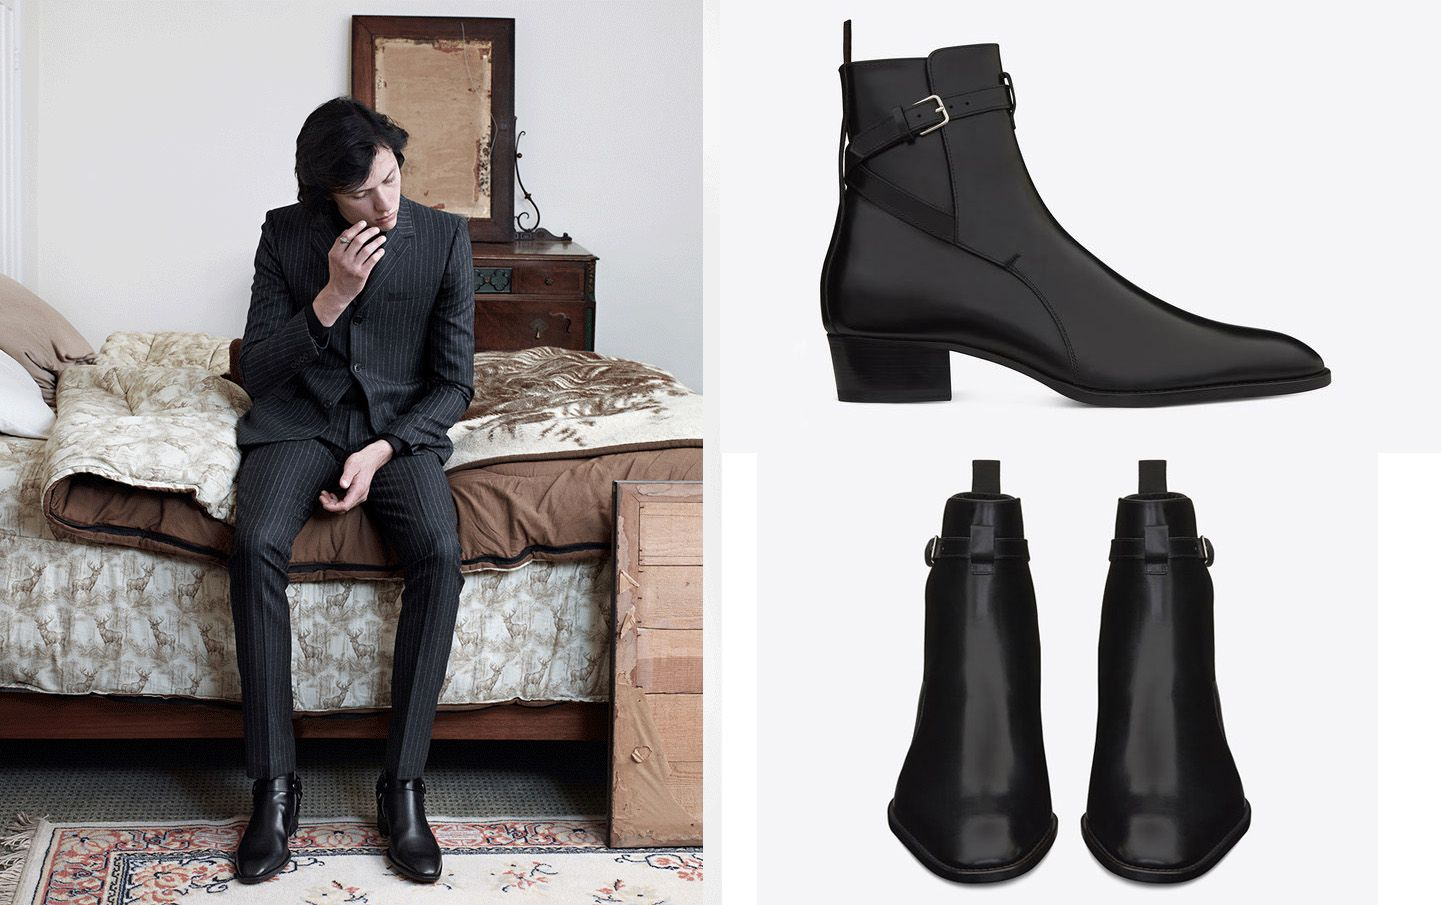 b1e09025407 Jodhpur, Dress With Boots, Gentleman Style, Ysl, Heeled Boots, Yves Saint